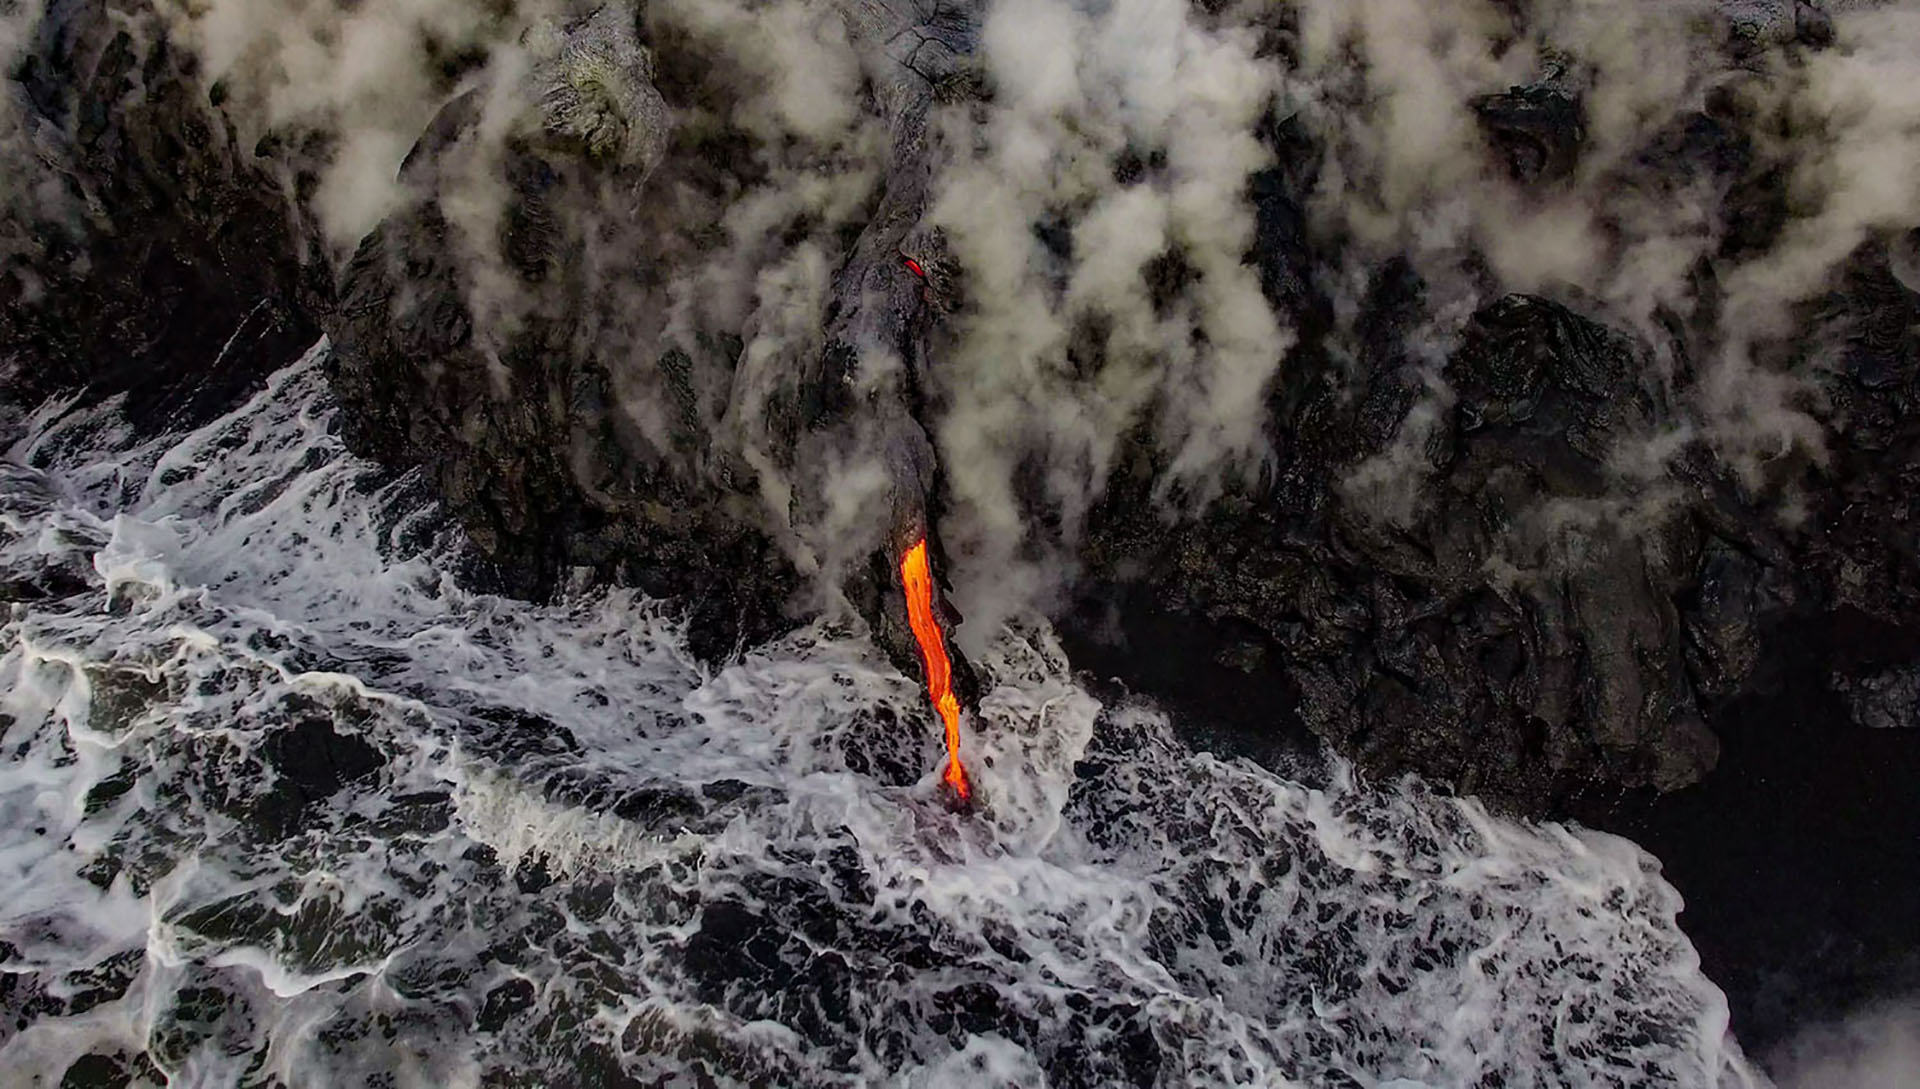 Molten Earth meets the ocean on the flanks of Kilauea volcano on the Big Island of Hawai'i.  A perspective not seen until the advent of drones, this interaction between lava, water, and time contributes to the buildup of an island chain.